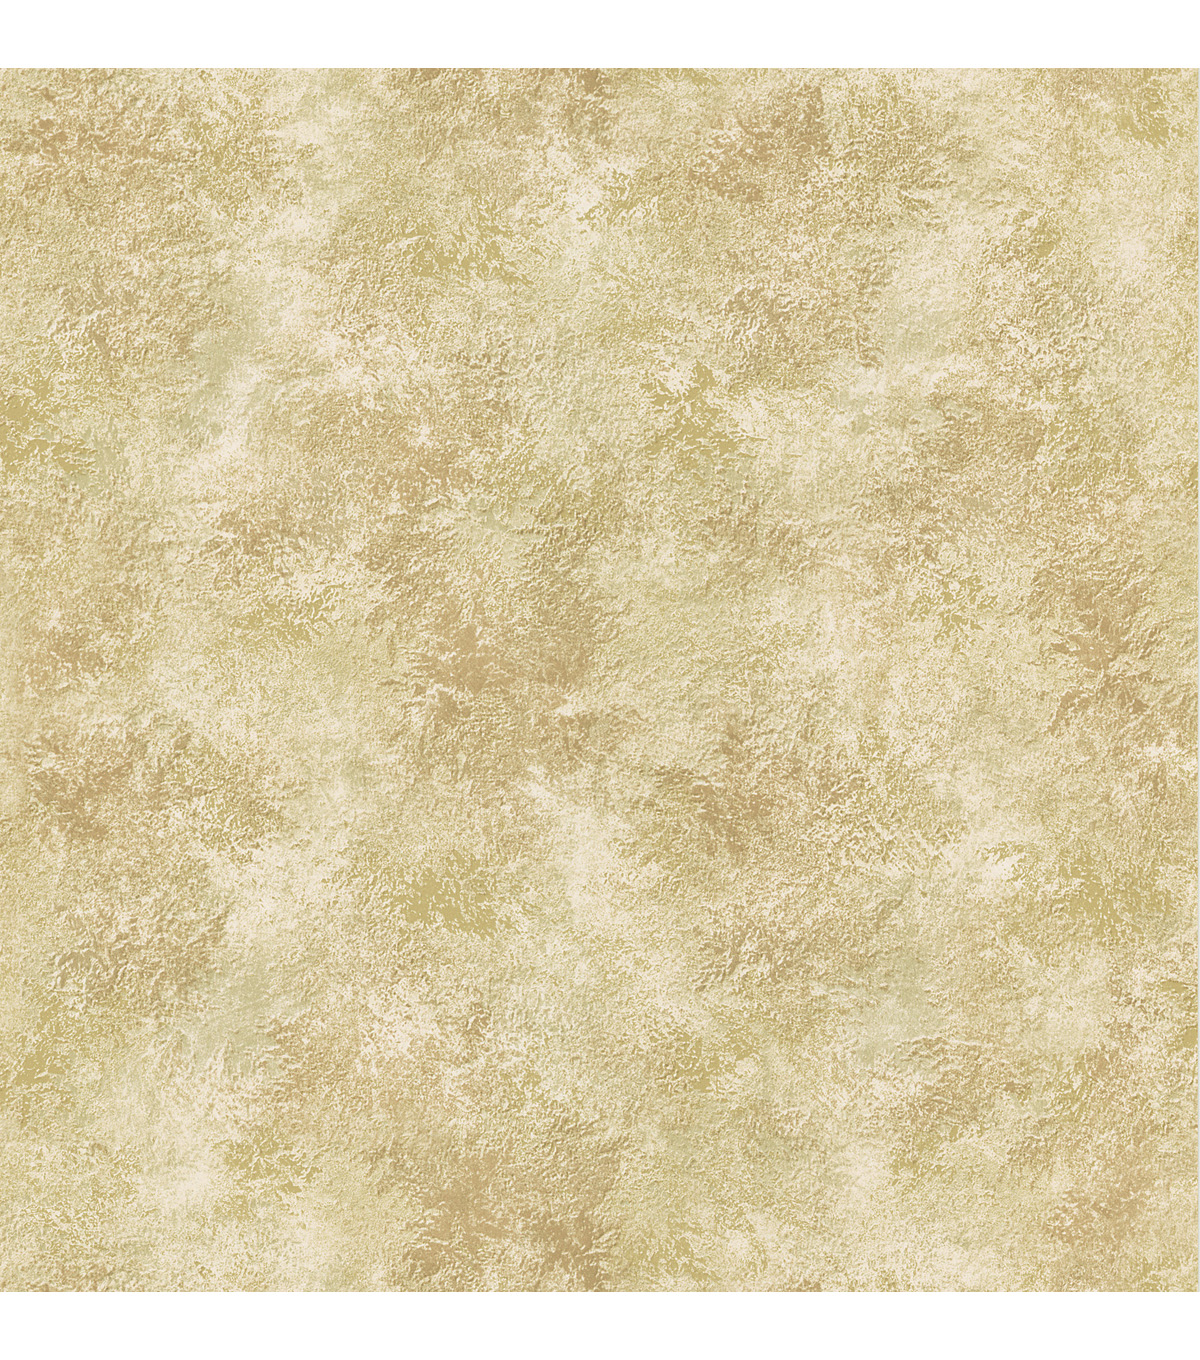 Ruggle Beige Plaster Texture Wallpaper Sample